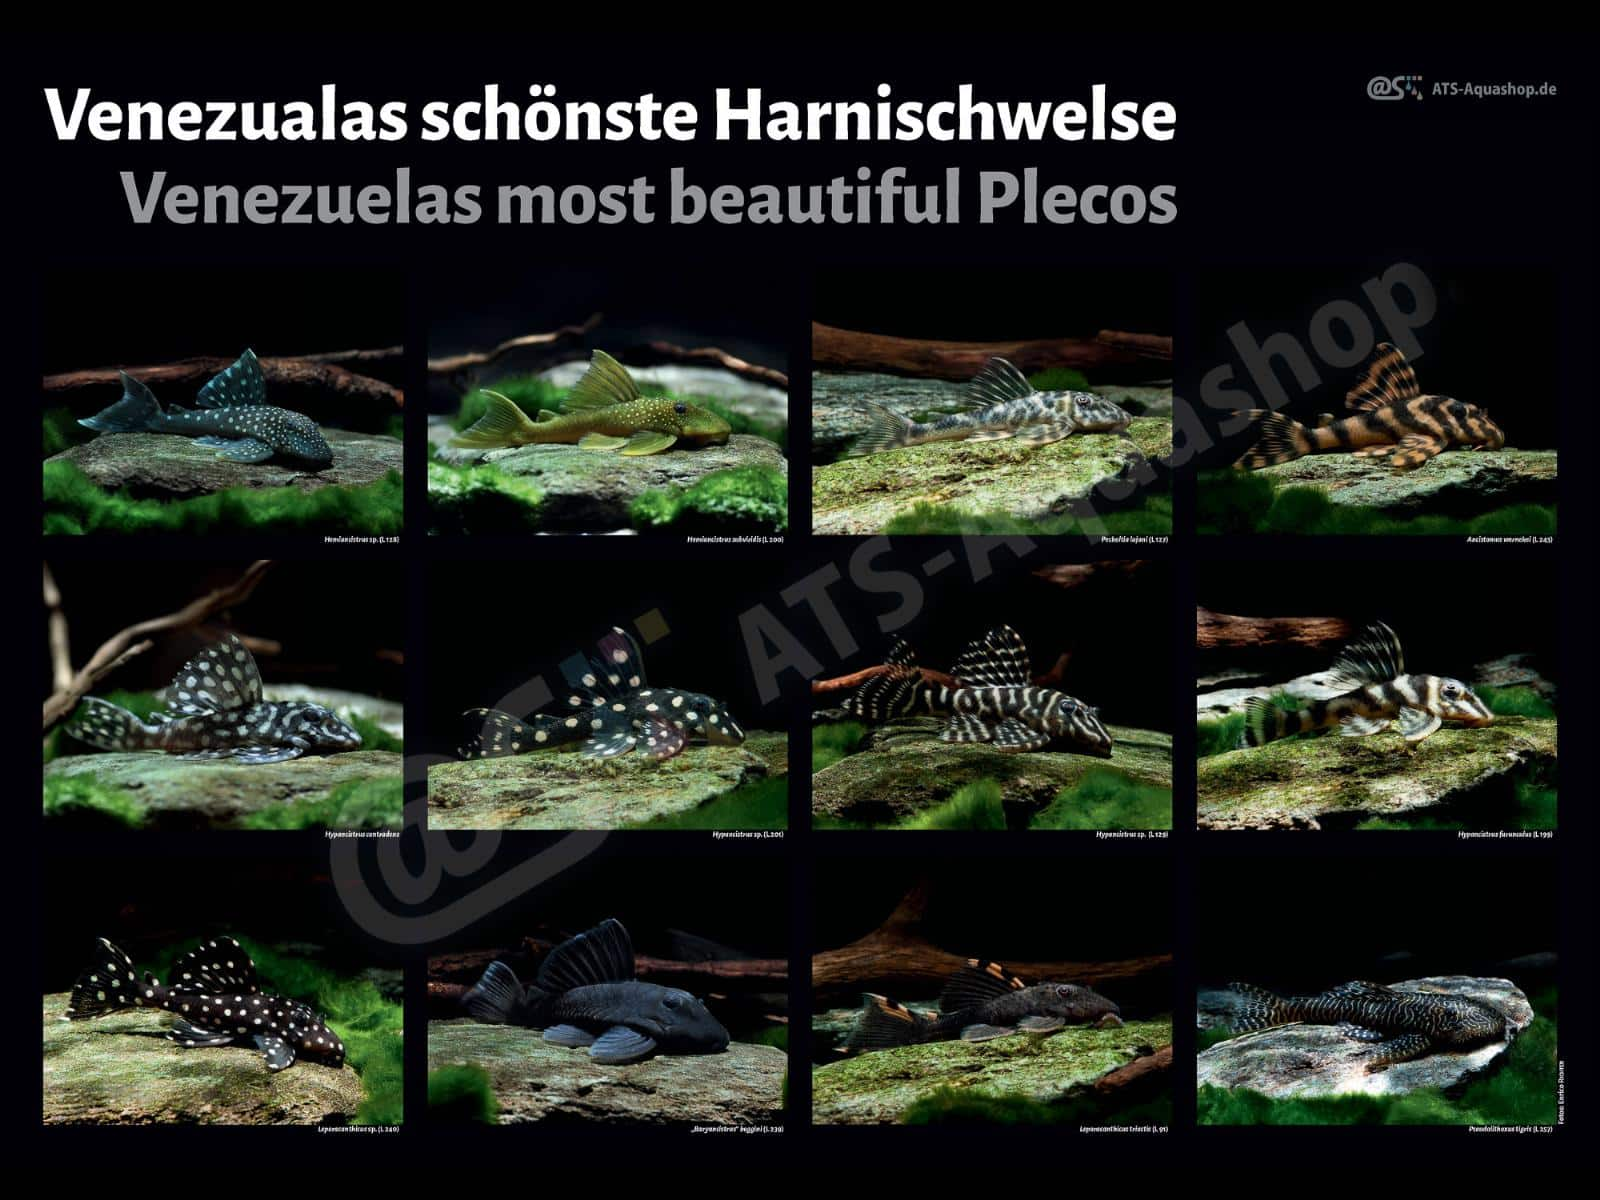 Posters: The most beautiful Plecos from Venezuela (Enrico Richter)